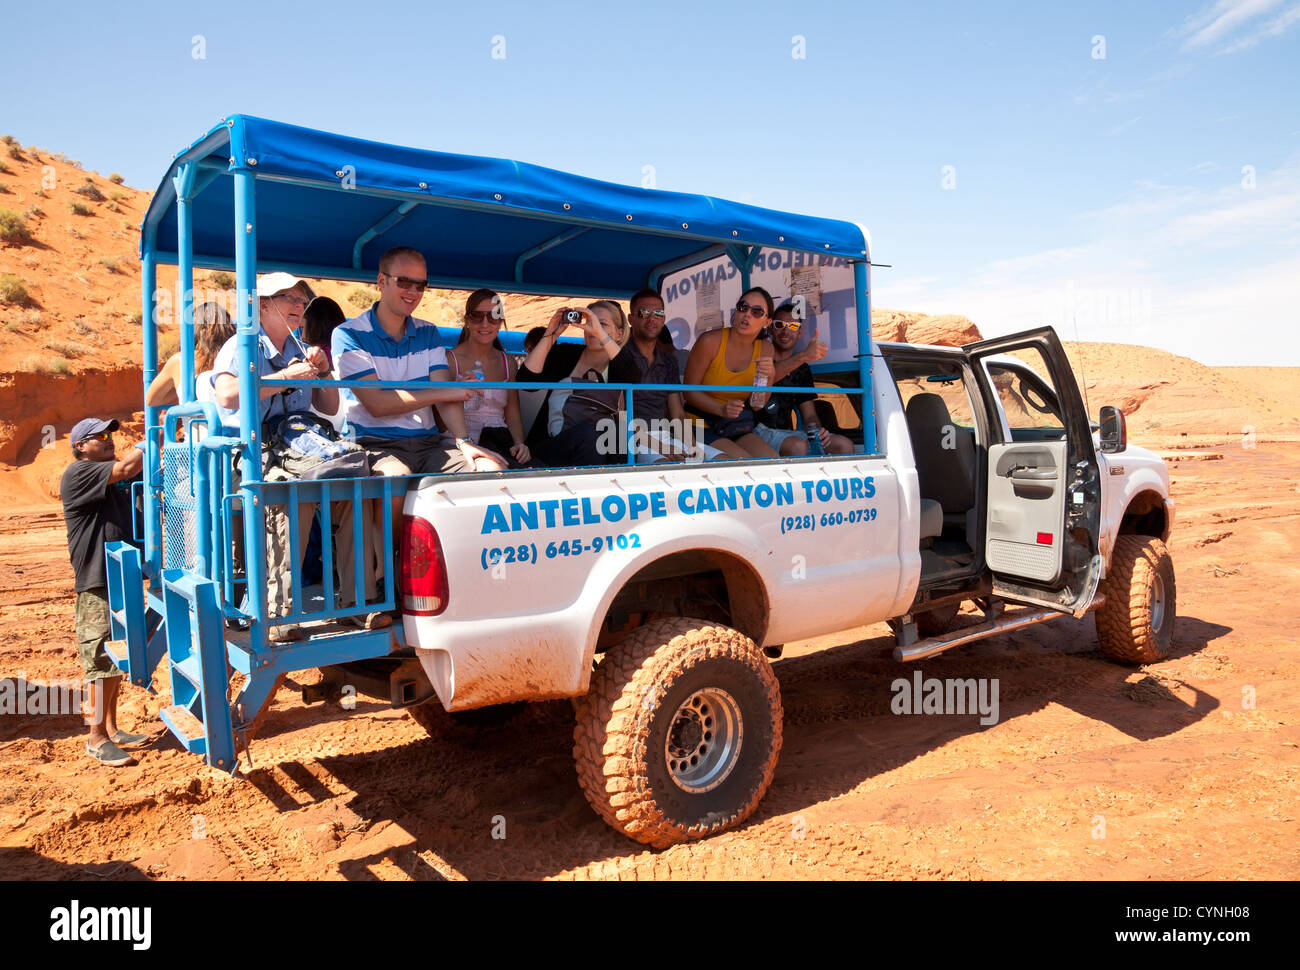 Antelope canyon tour truck full of young people - Stock Image